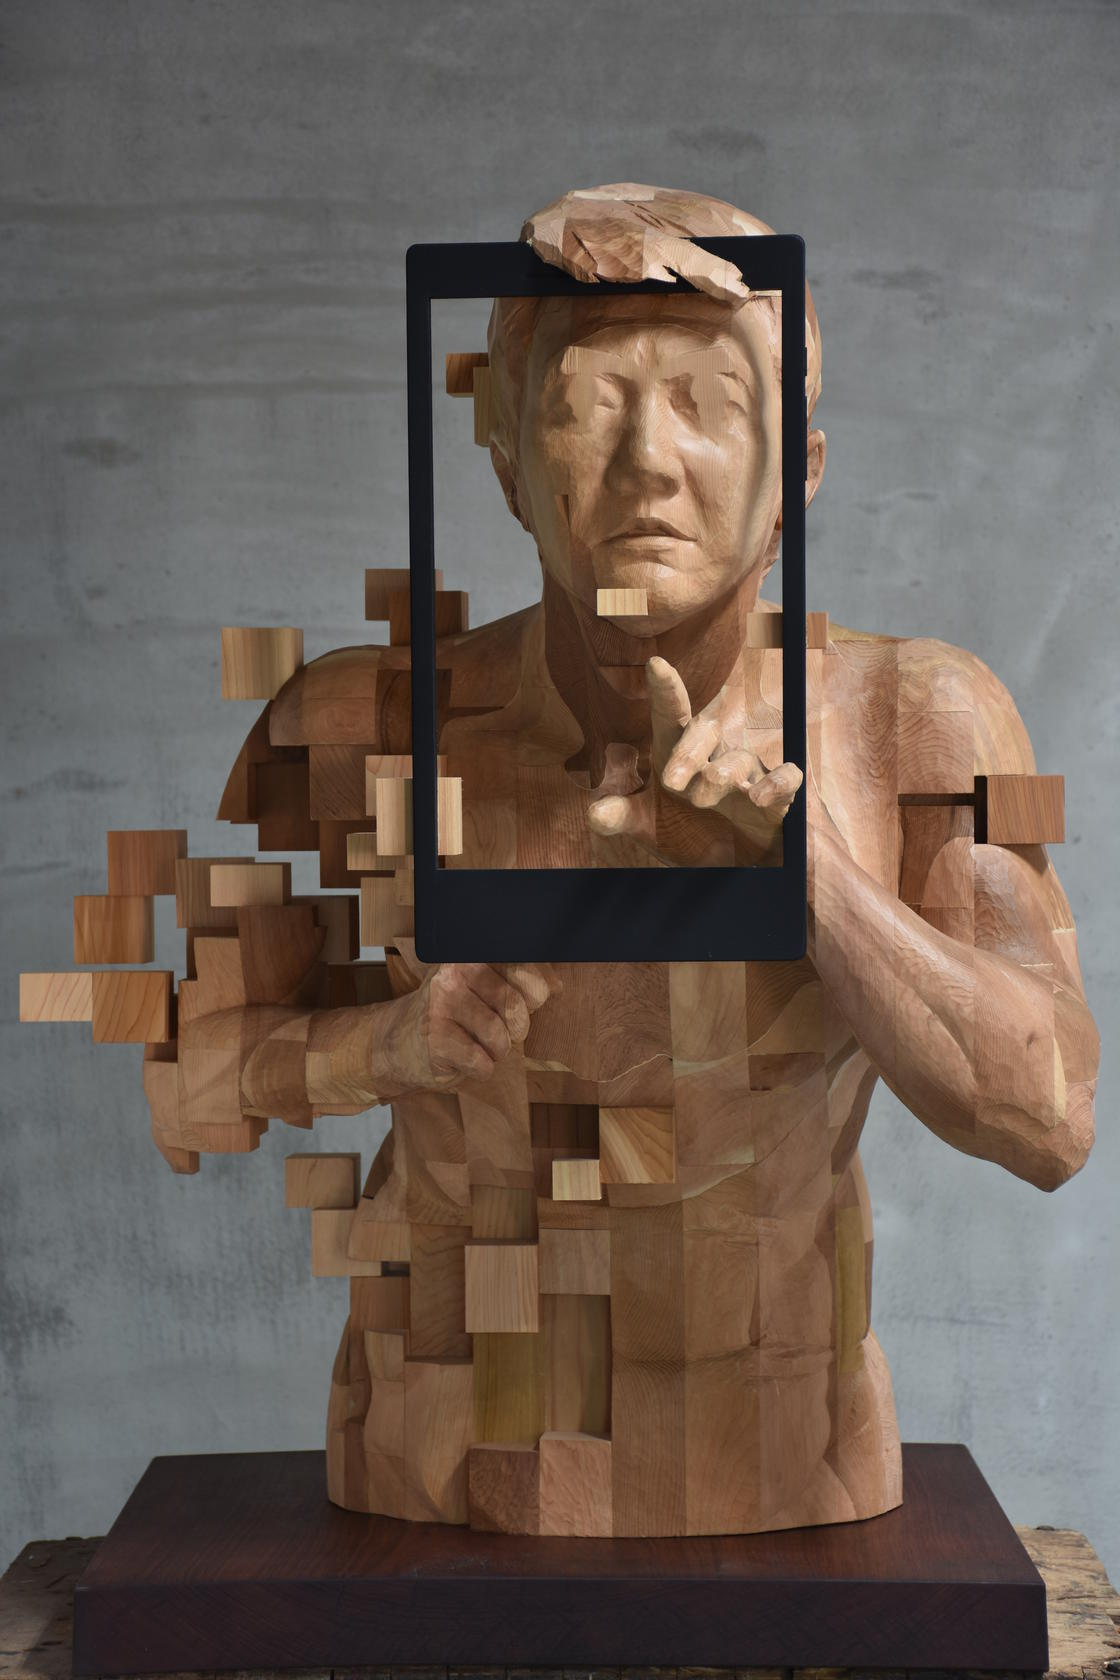 Wooden Glitches - The amazing sculptures by Hsu Tung Han